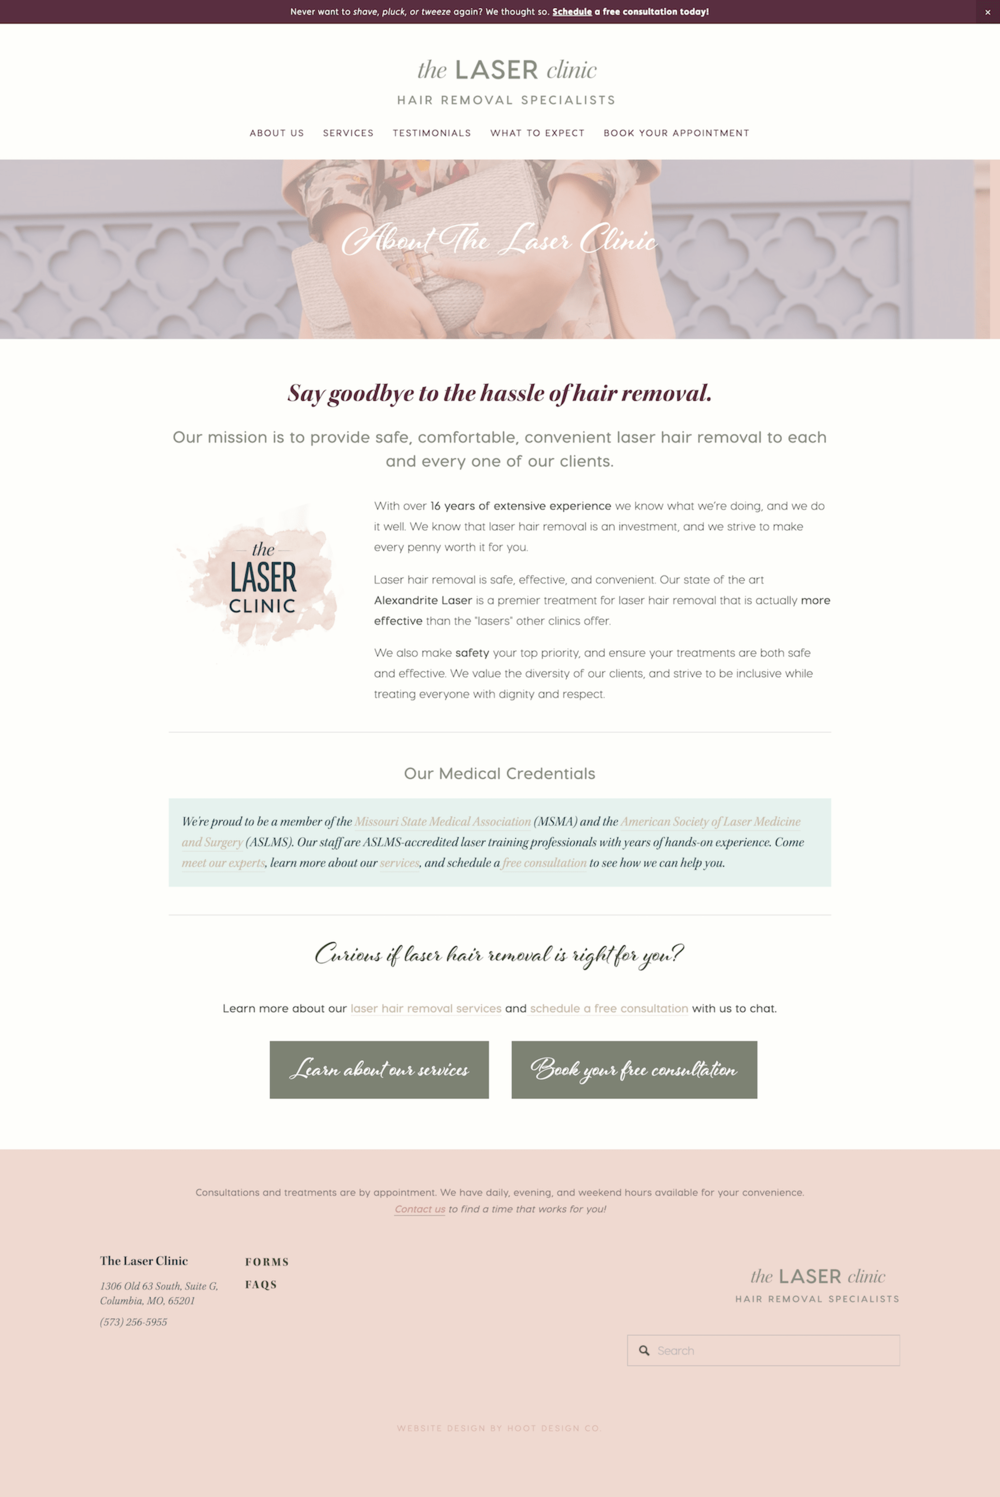 Squarespace in Columbia, MO – AFTER we redid the laser clinic's site